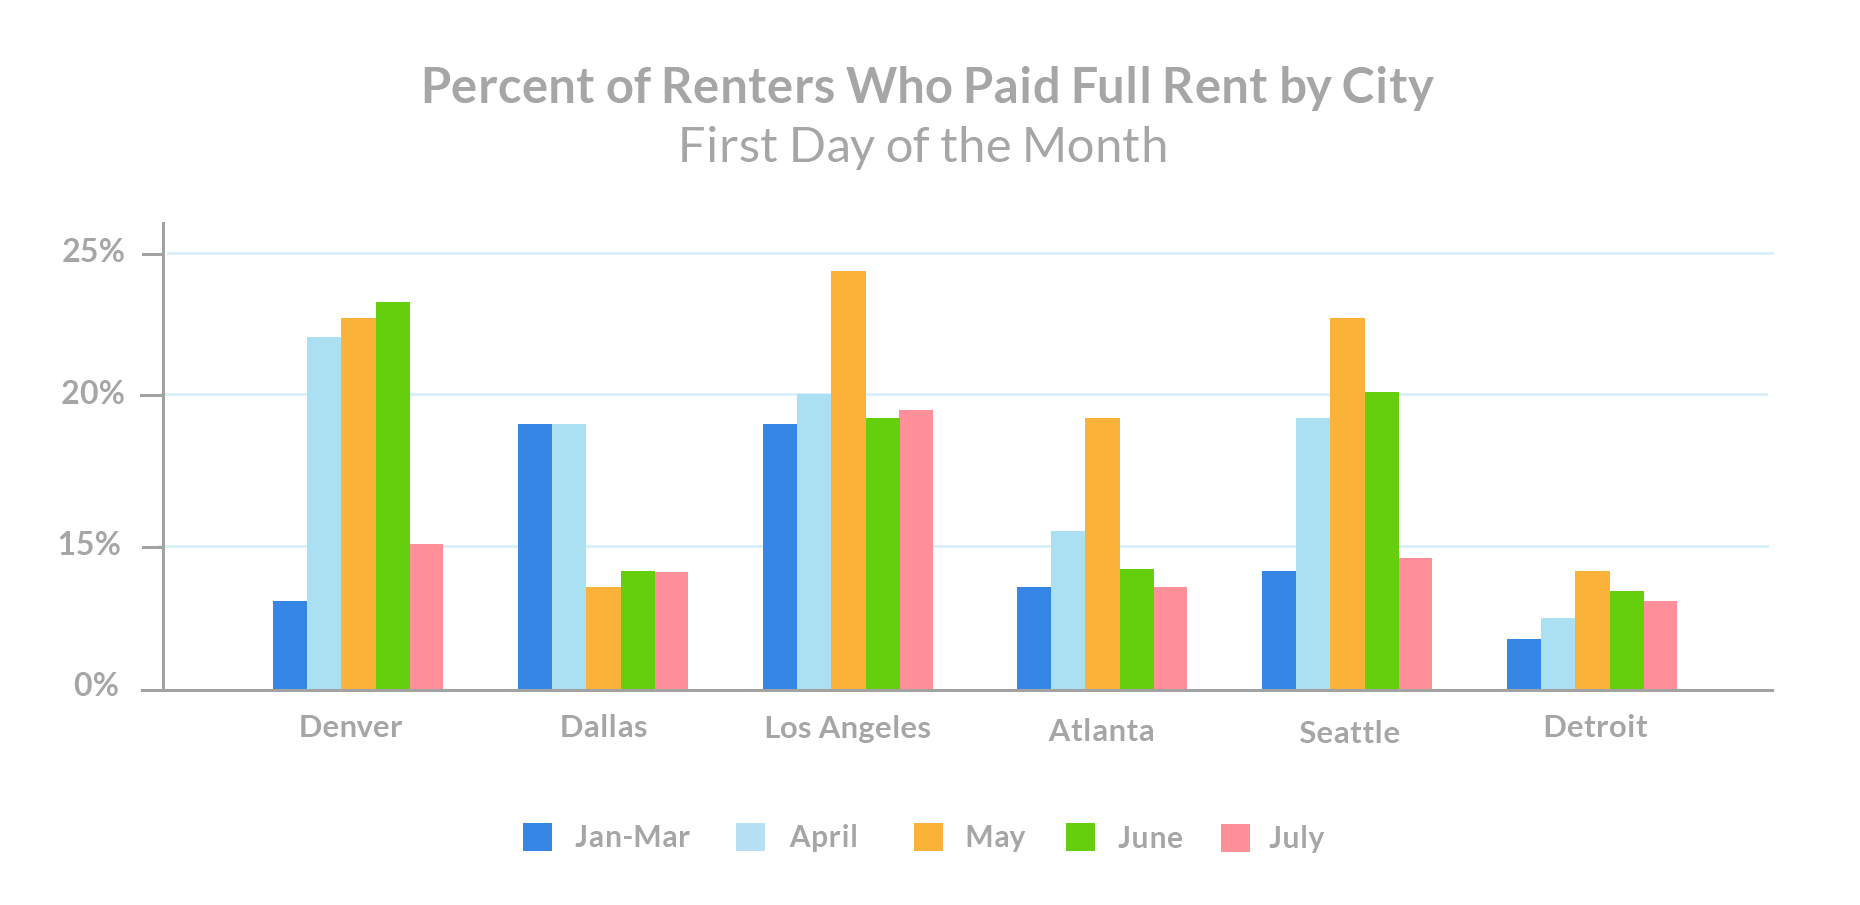 july 1st rent payments Percent of Renters Who Paid Full Rent by City